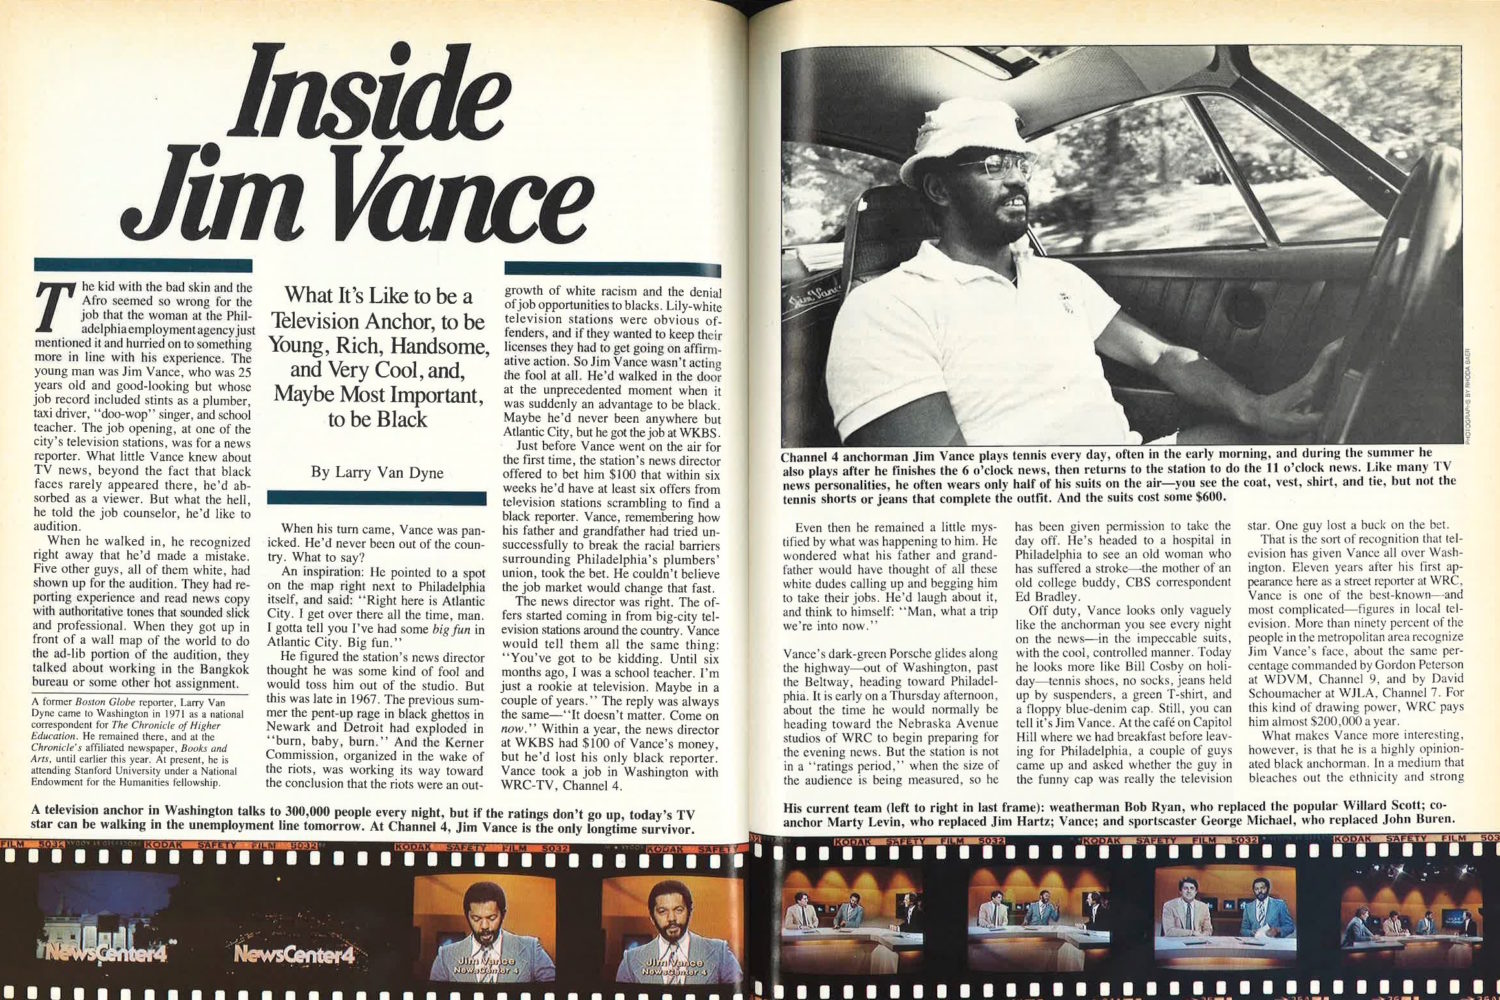 Jim Vance Washingtonian magazine 1980